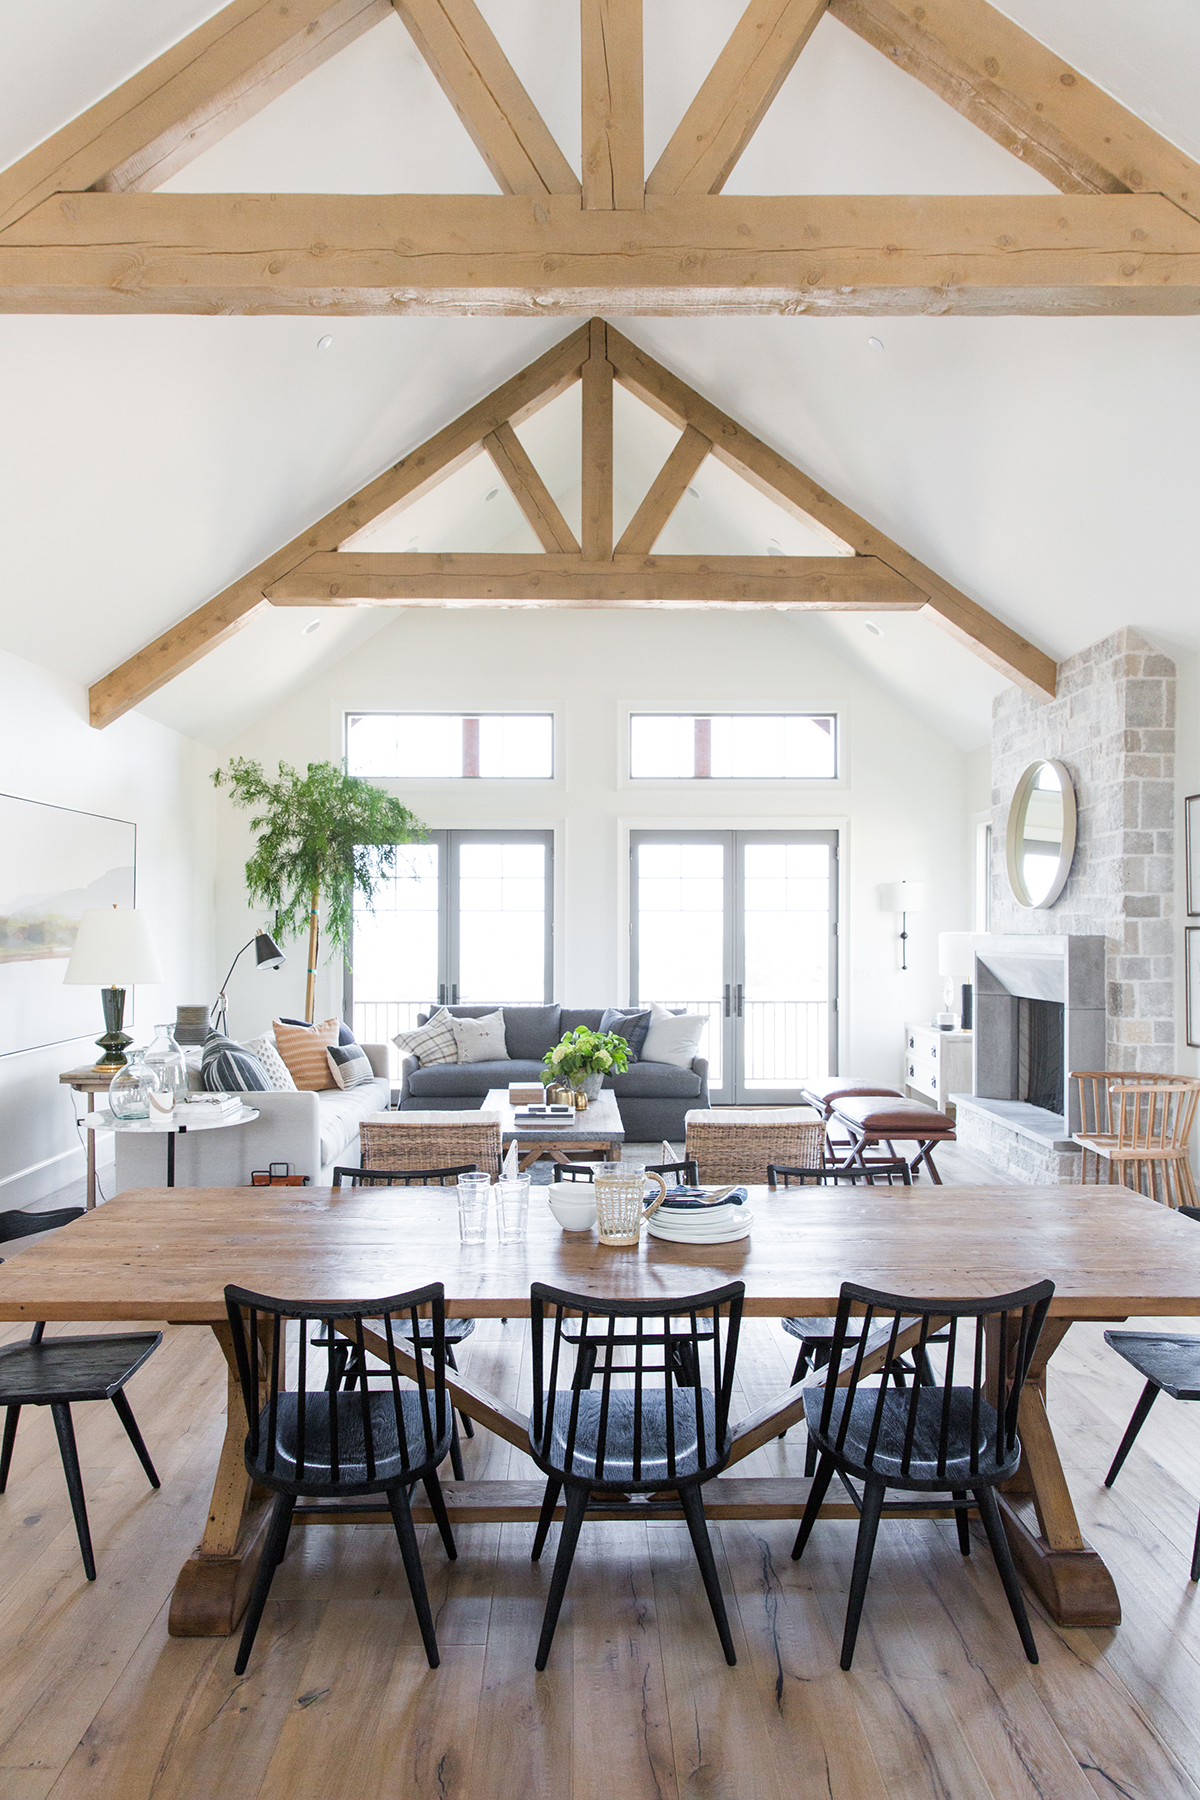 Dining room with exposed beams, mismatched chairs, black chairs in mountain home - Studio McGee Design